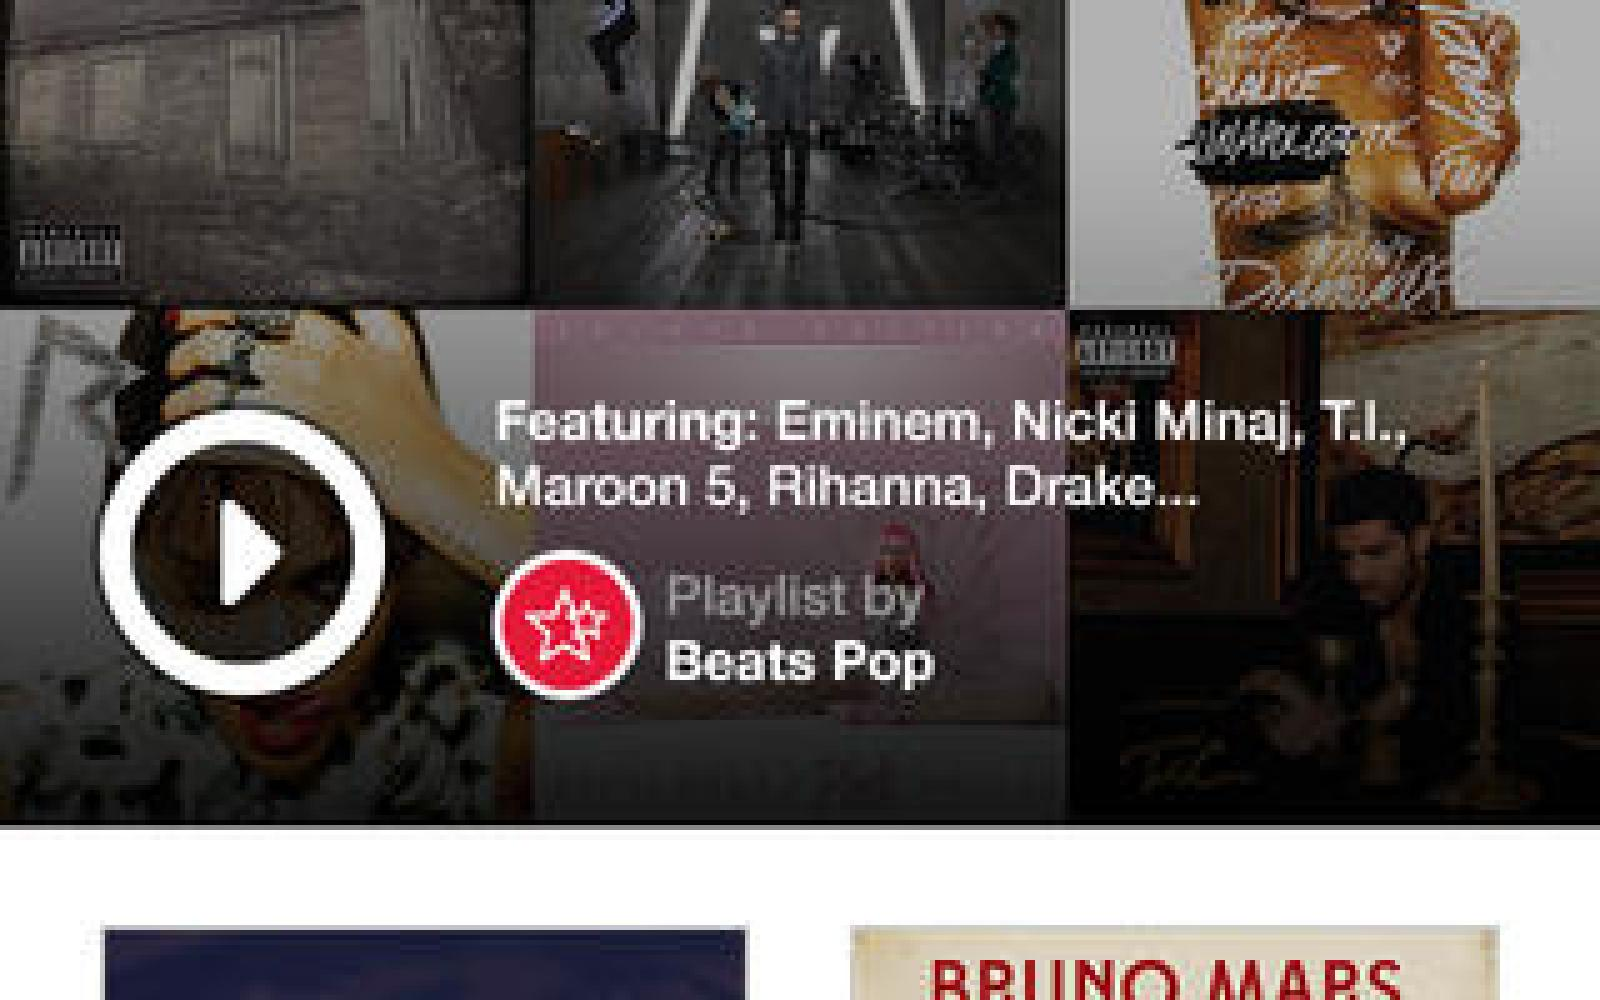 Beats Music iOS app drops yearly pricing to $99, extends free trial as Apple confirms deal